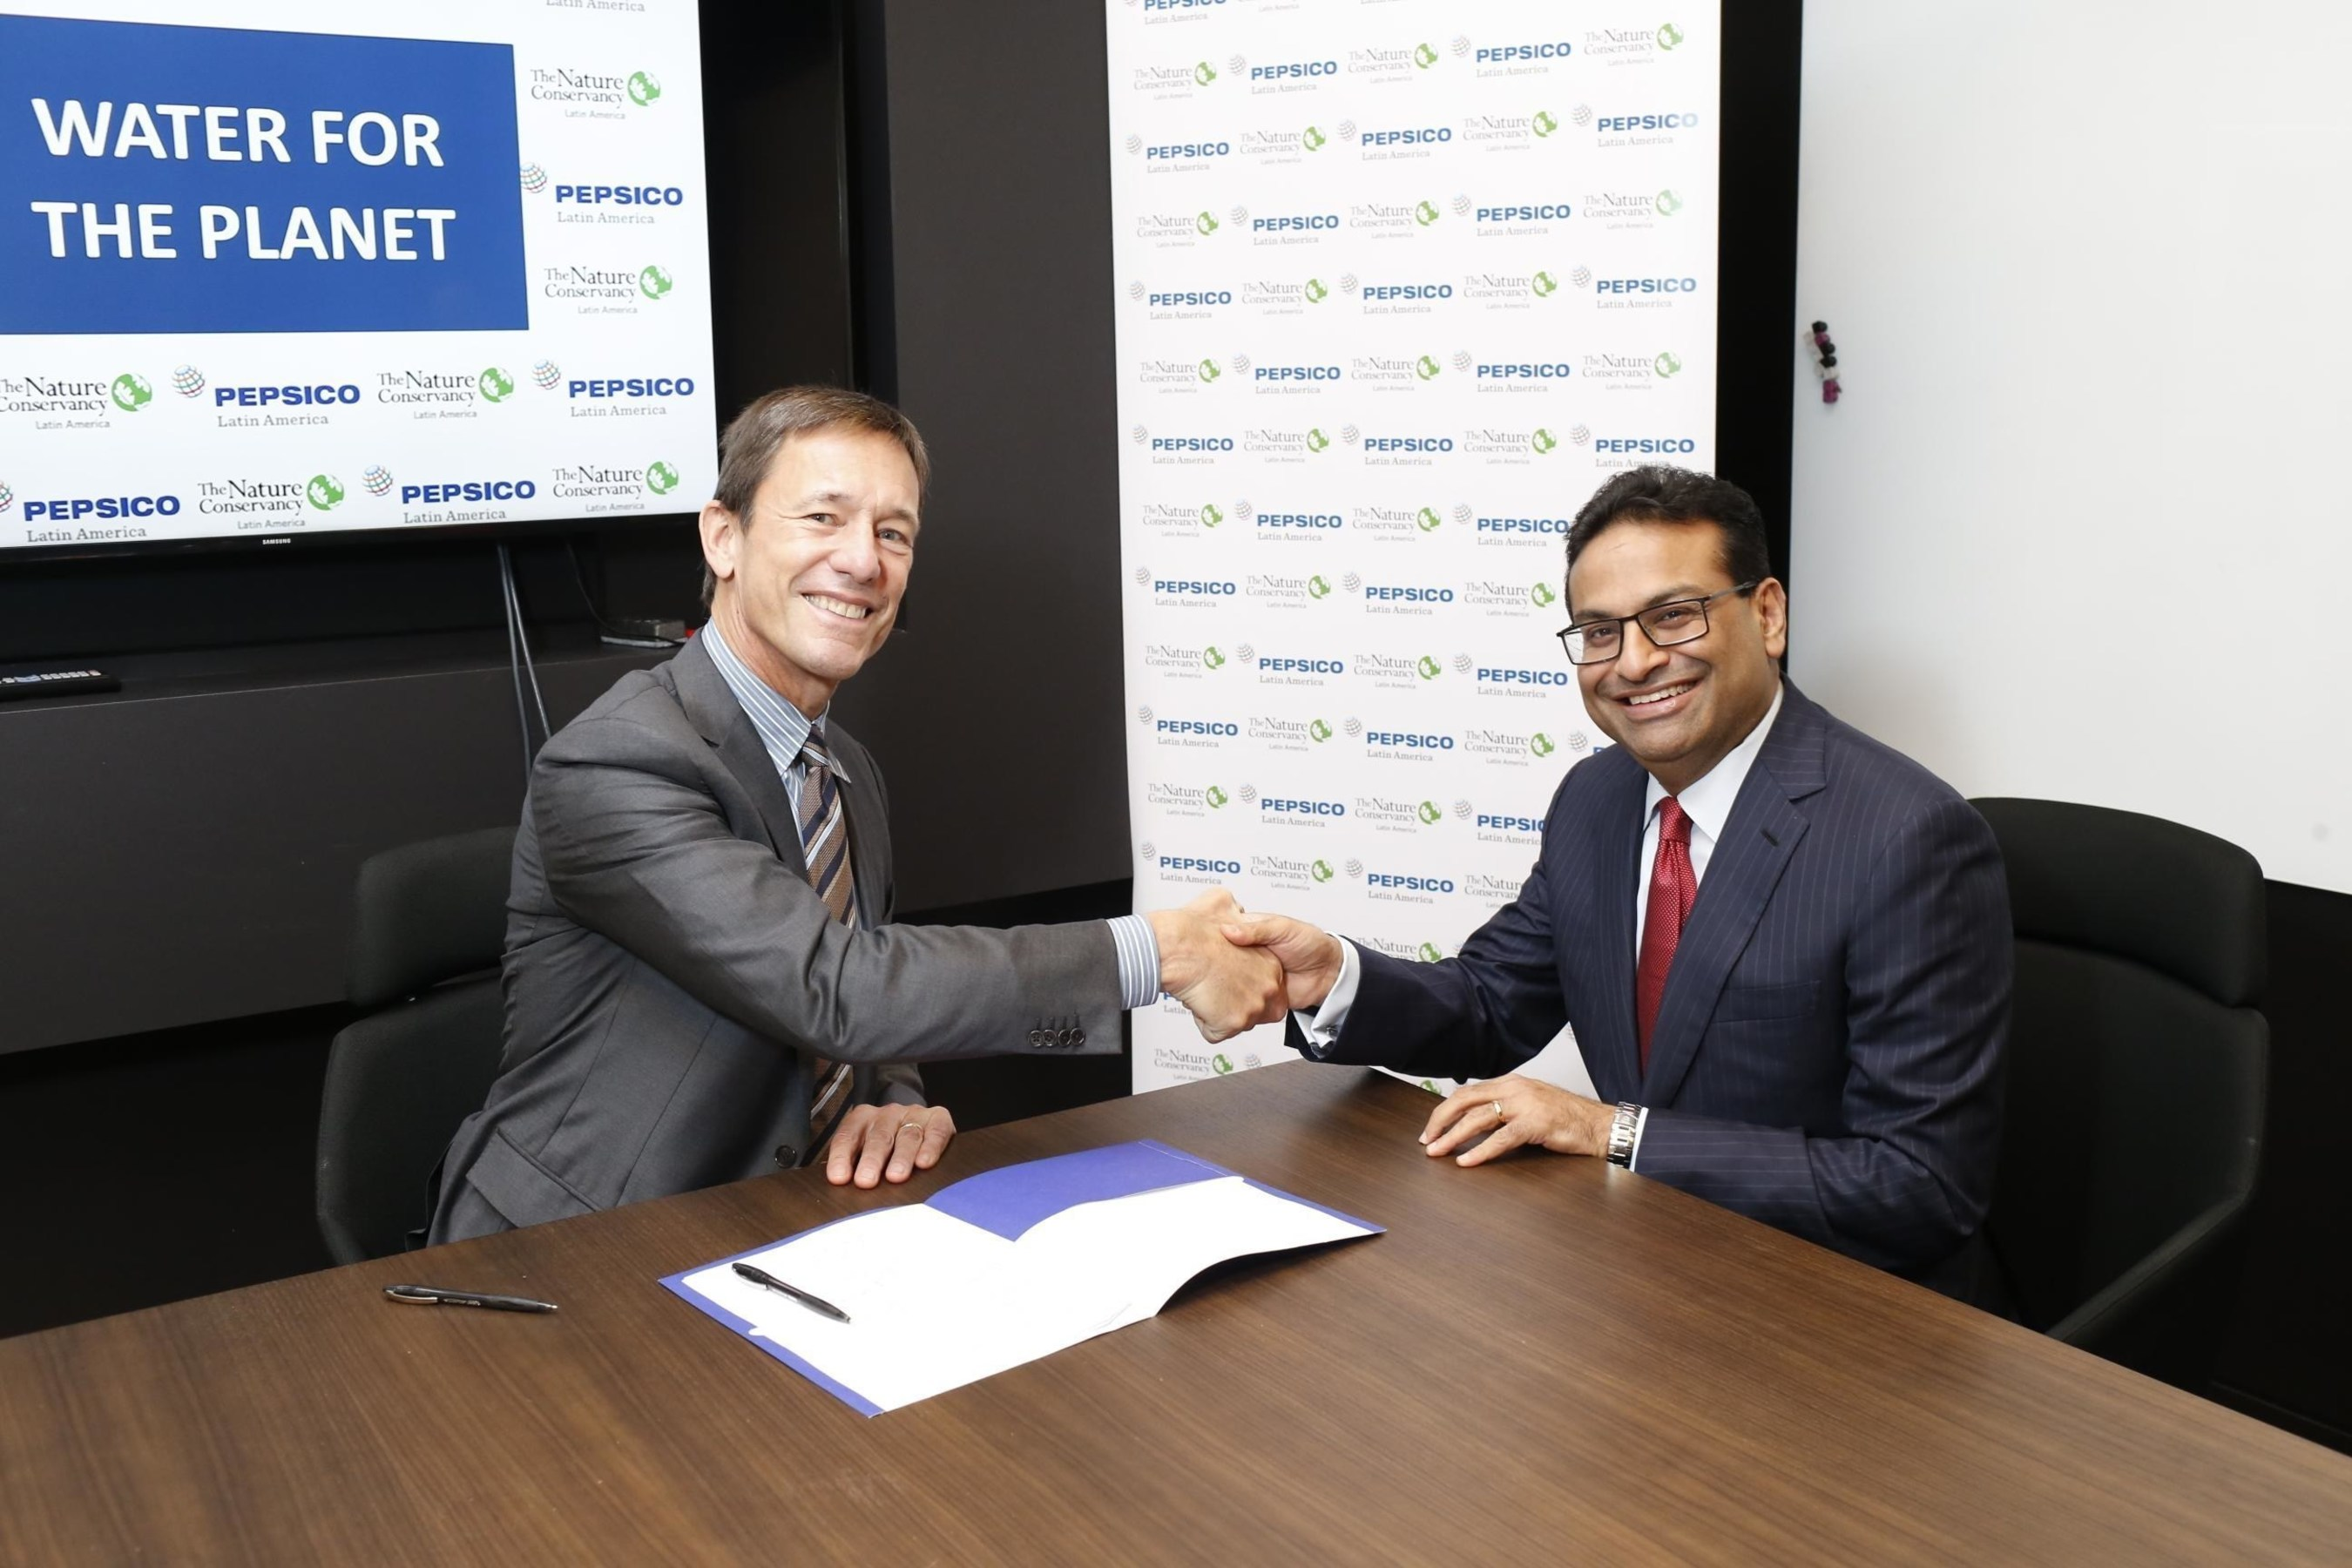 PepsiCo Latin America CEO Laxman Narasimhan and The Nature Conservancy President and CEO Mark Tercek announce a new collaboration for water replenishment in Latin America